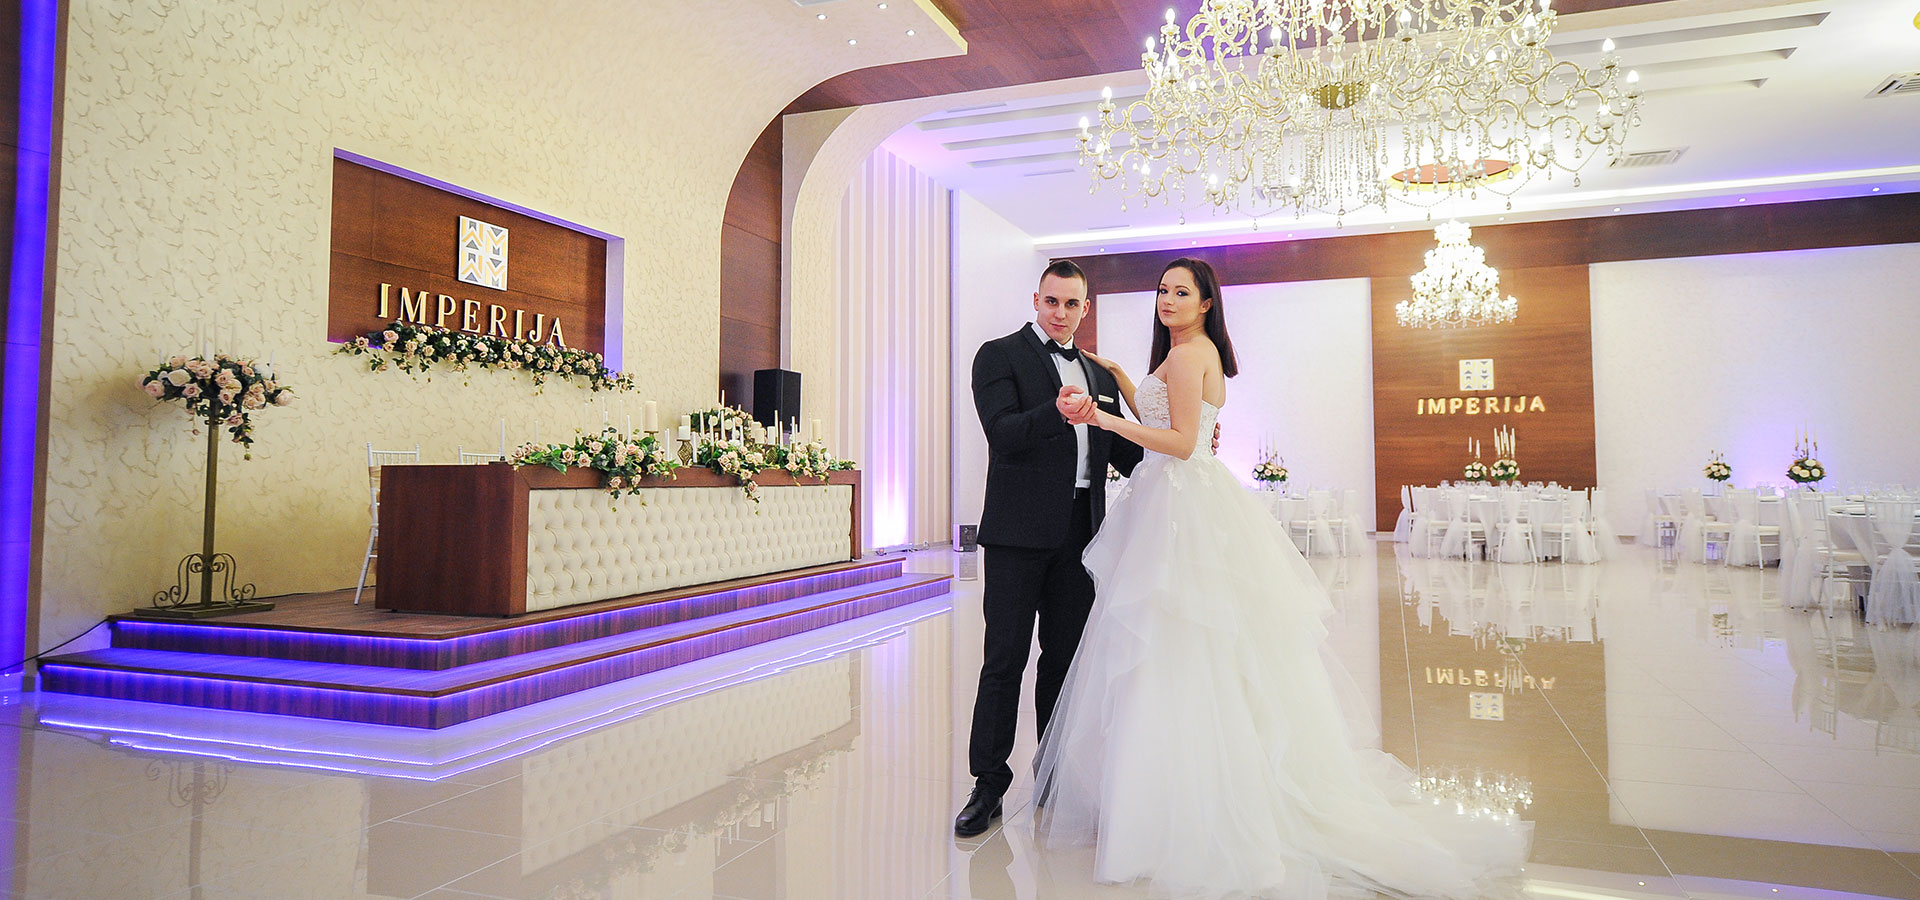 Imperija M: the weddings and celebrations hall of your dreams